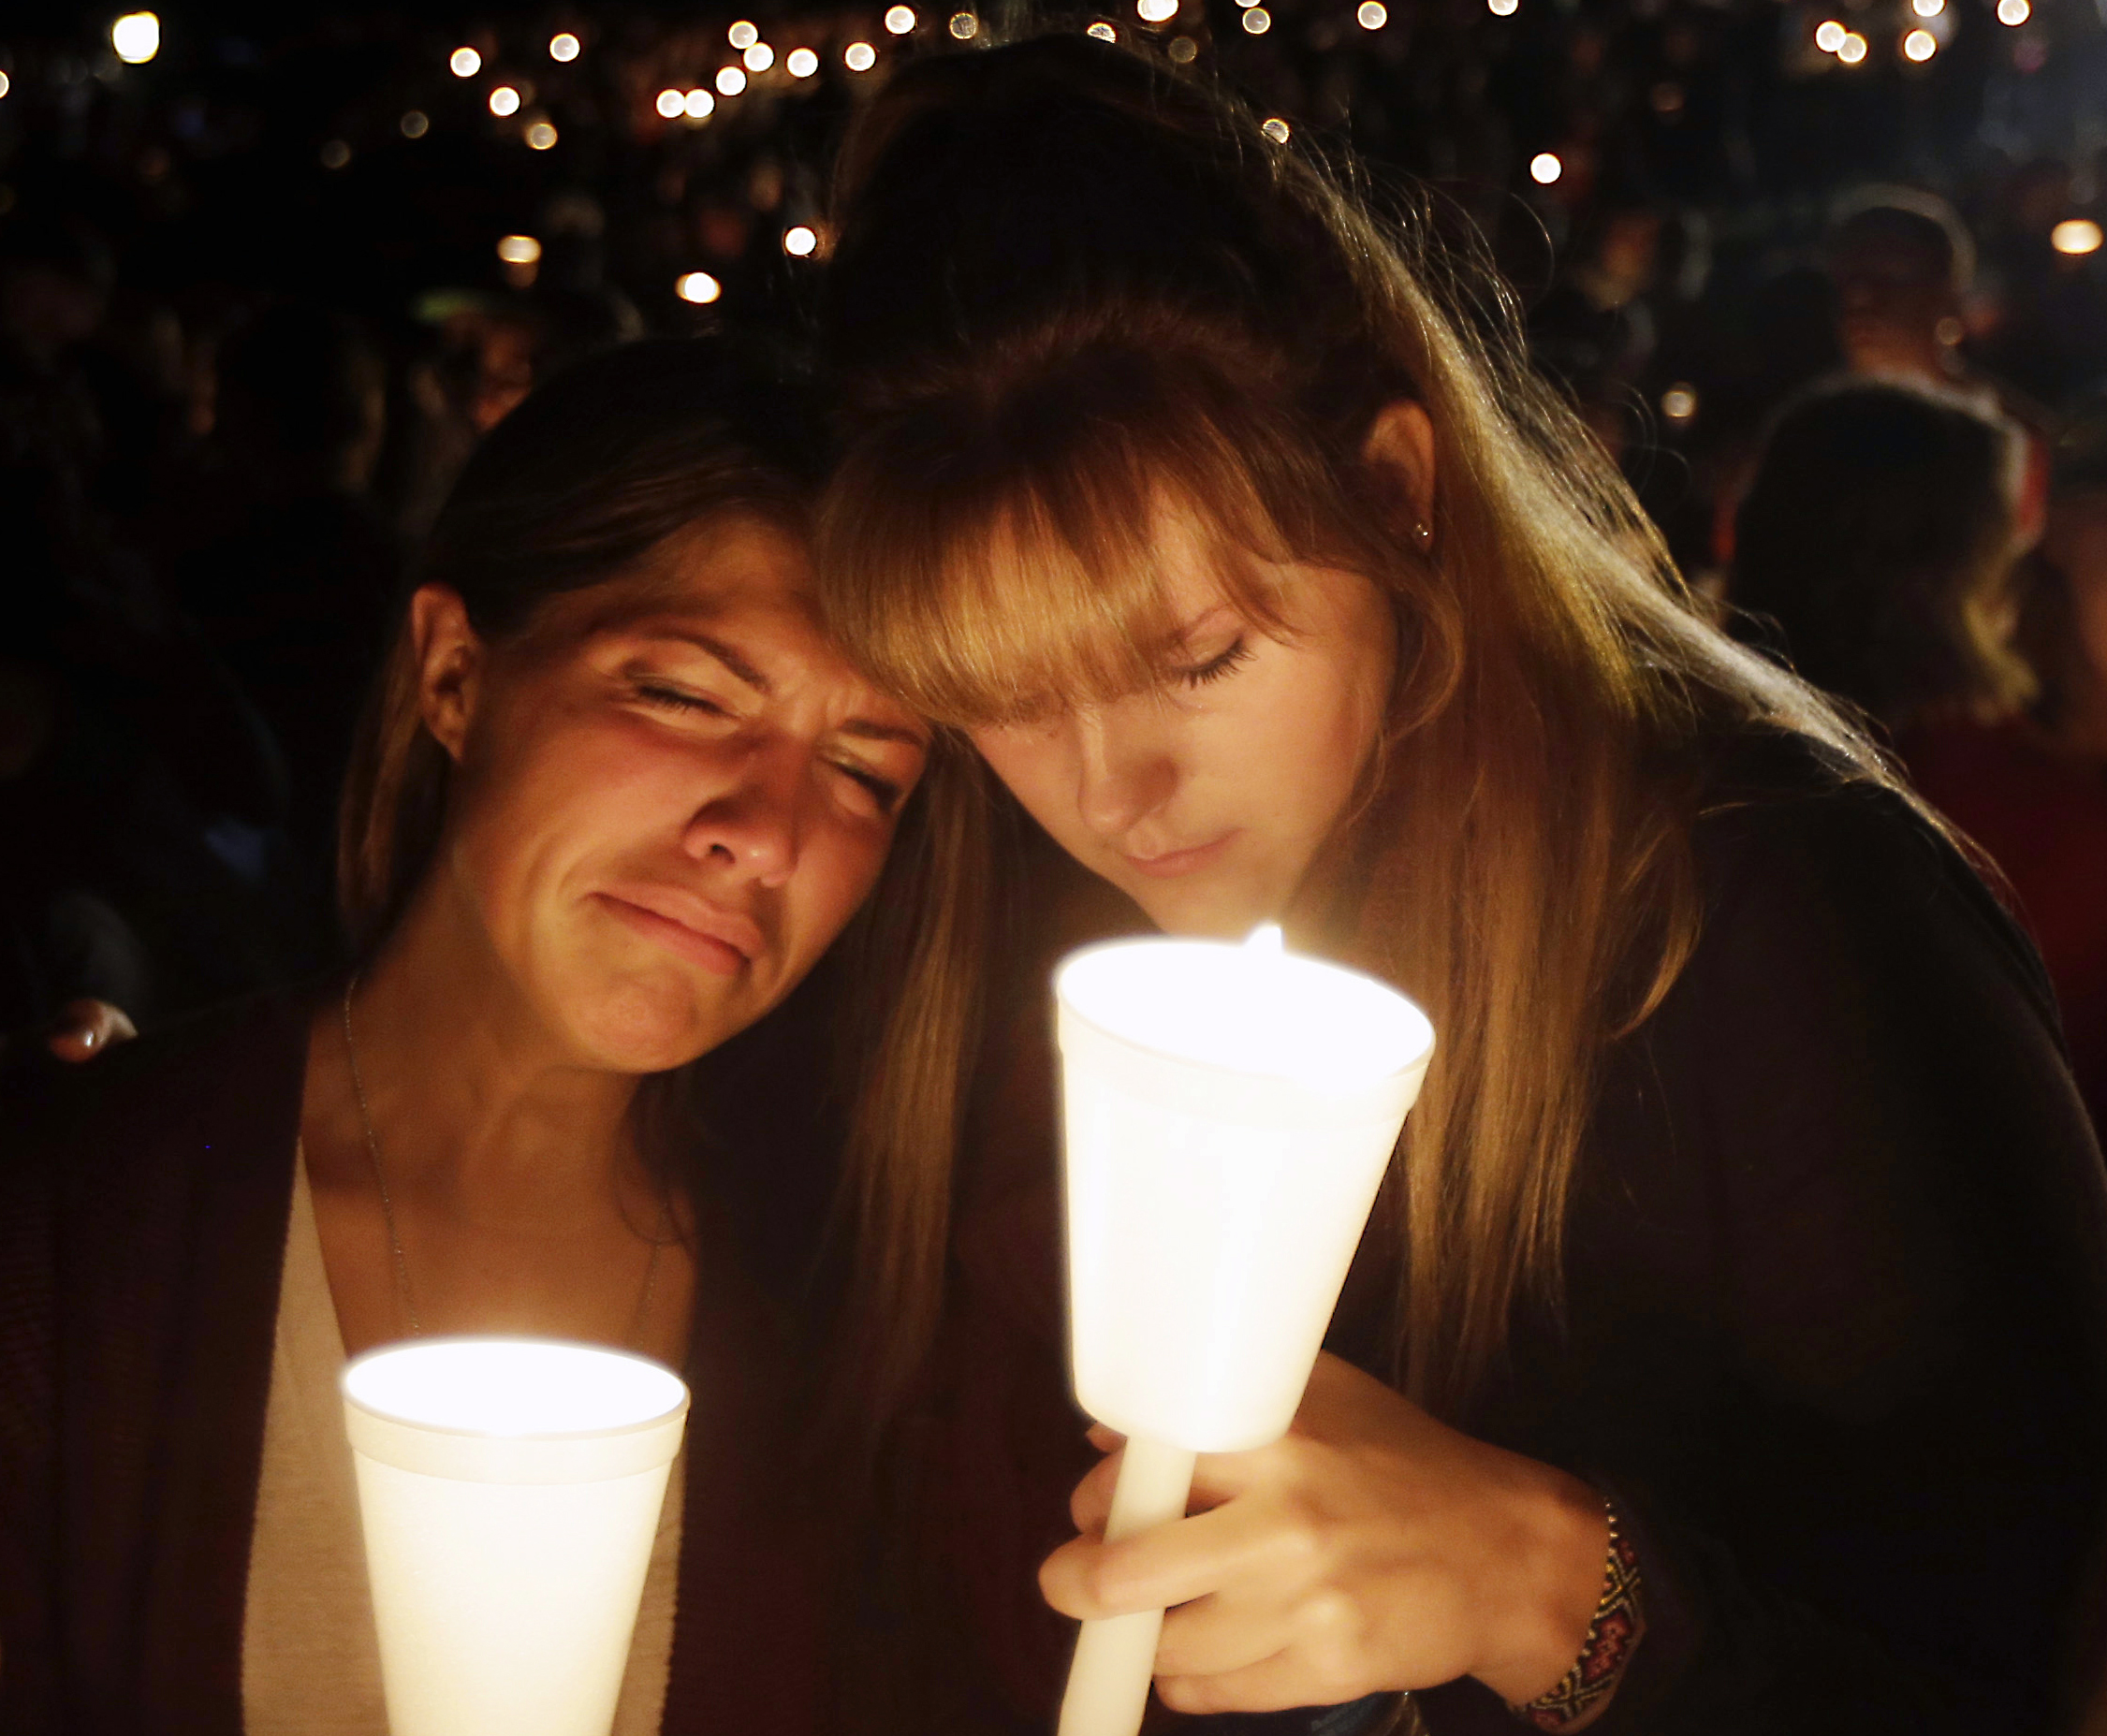 Kristen Sterner, left, and Carrissa Welding, both students at Umpqua Community College, embrace each other during a candlelight vigil for those killed during a shooting at the college, Thursday, Oct. 1, 2015, in Roseburg, Ore. (AP Photo/Rich Pedroncelli)